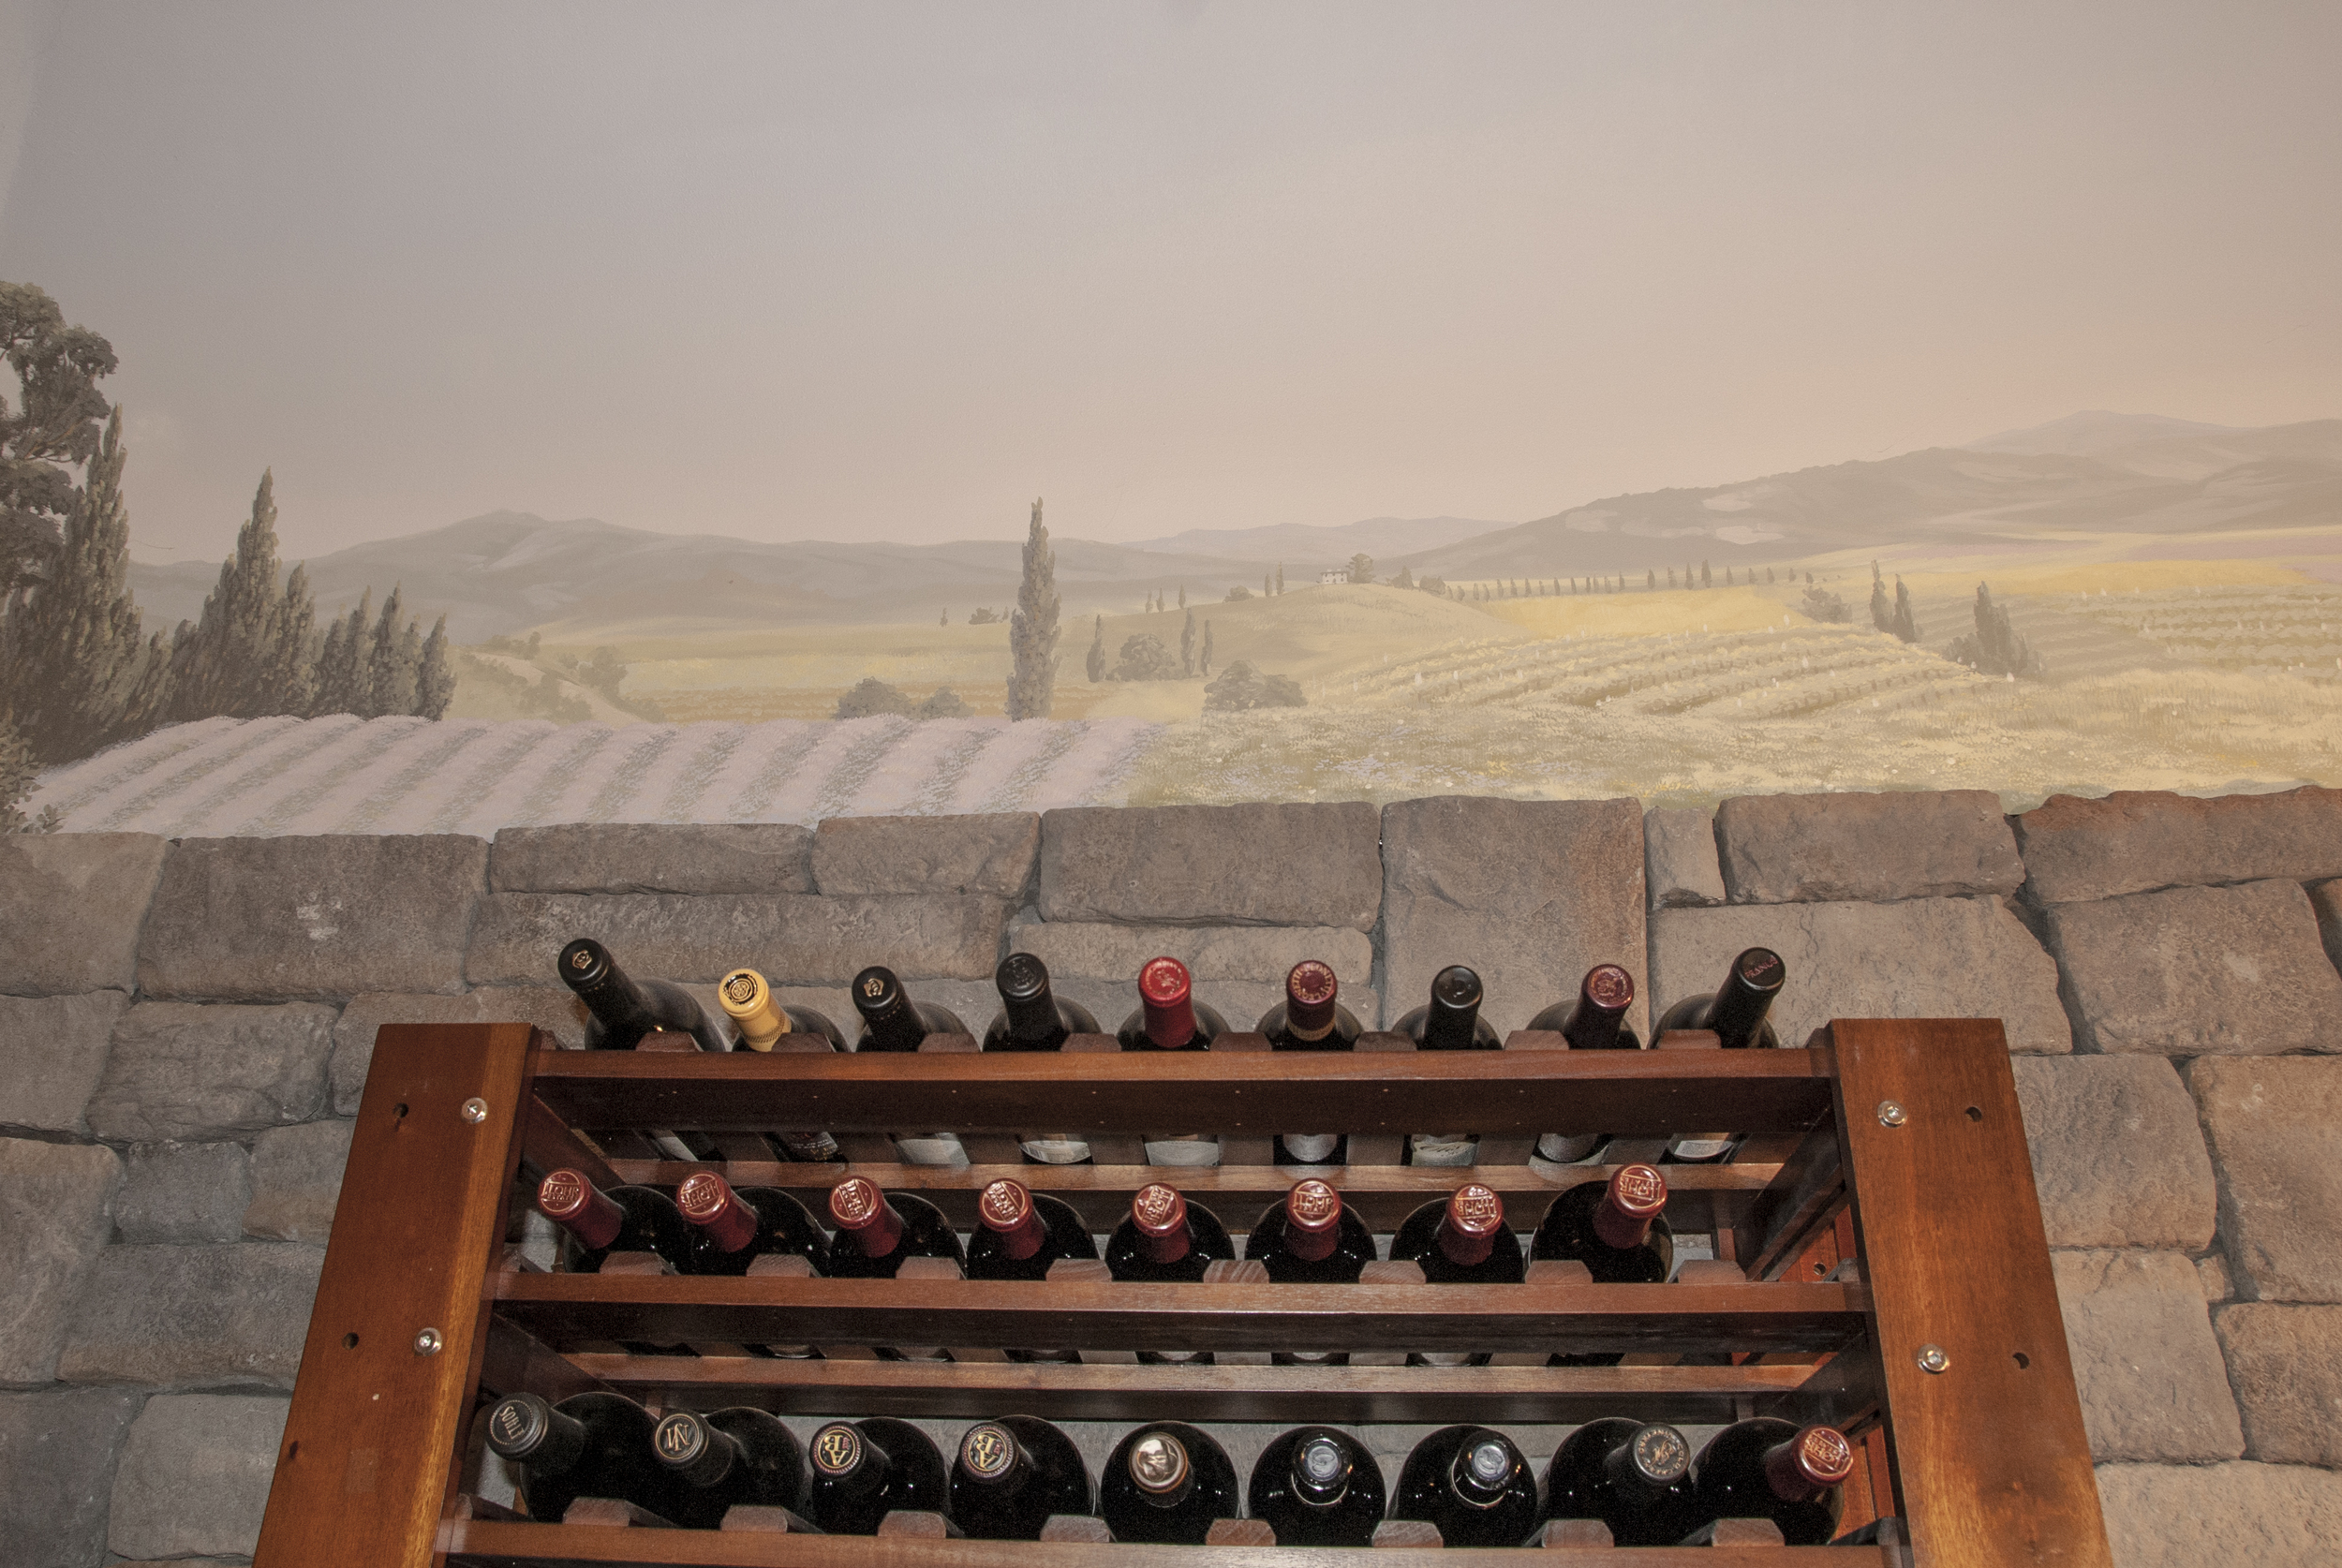 It's a great space to gather with friends over a bottle and enjoy the Tuscan countryside and the feel of being in an ancient cavern.